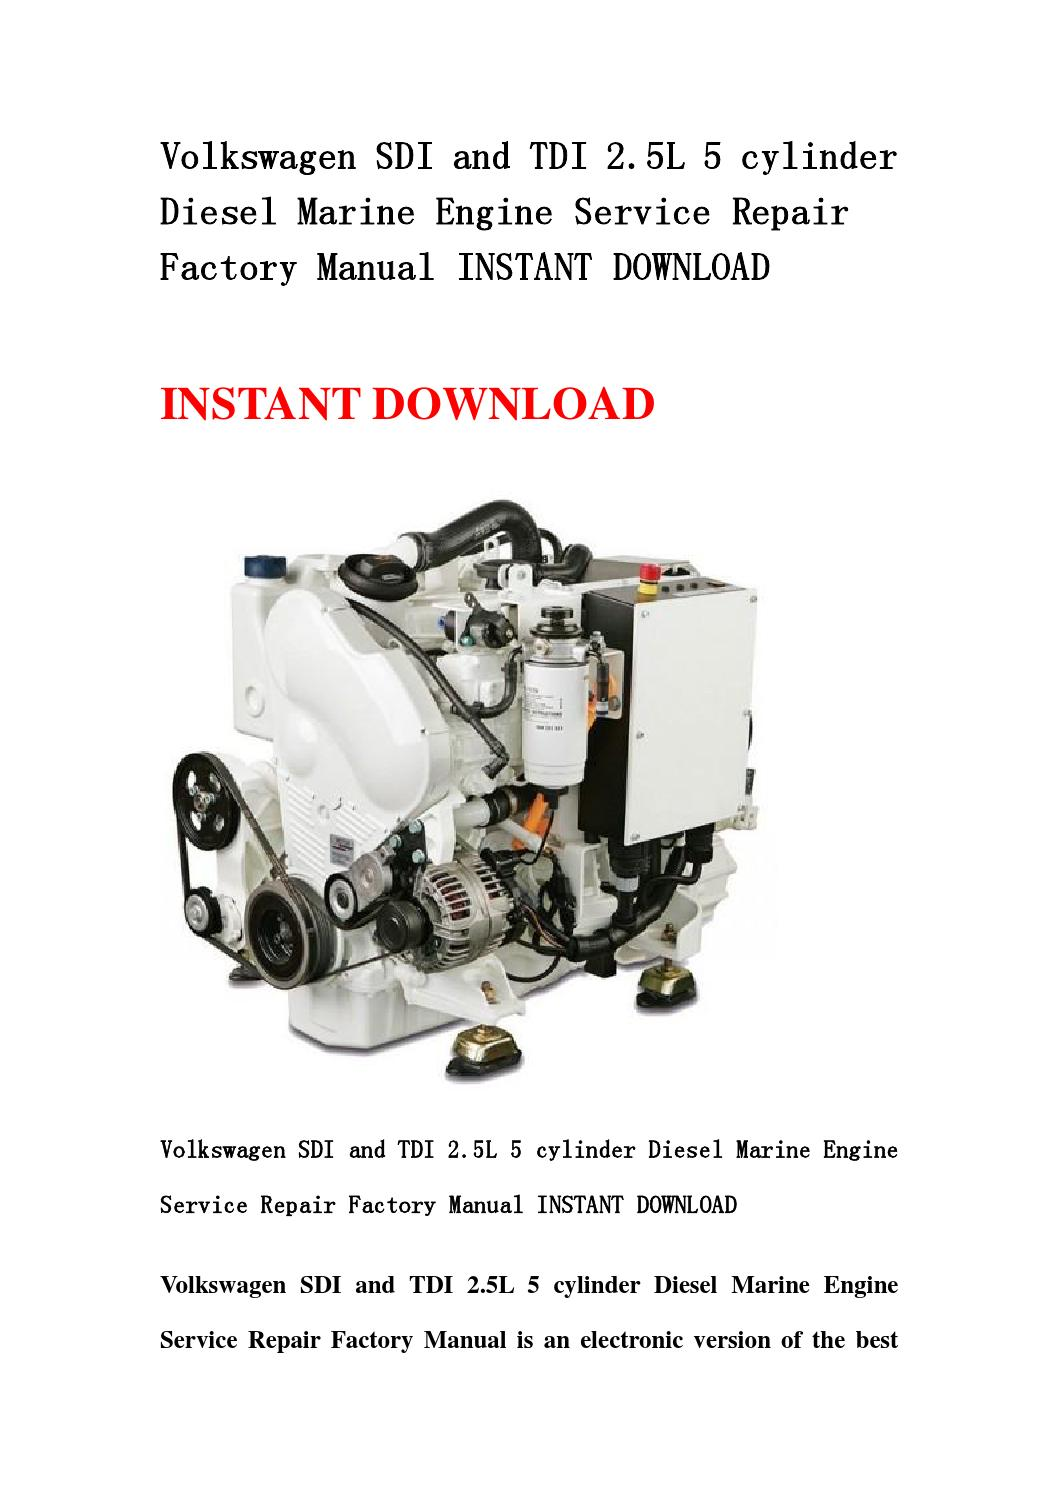 hight resolution of volkswagen sdi and tdi 2 5l 5 cylinder diesel marine engine service repair factory manual instant do by kmjnshenfn issuu